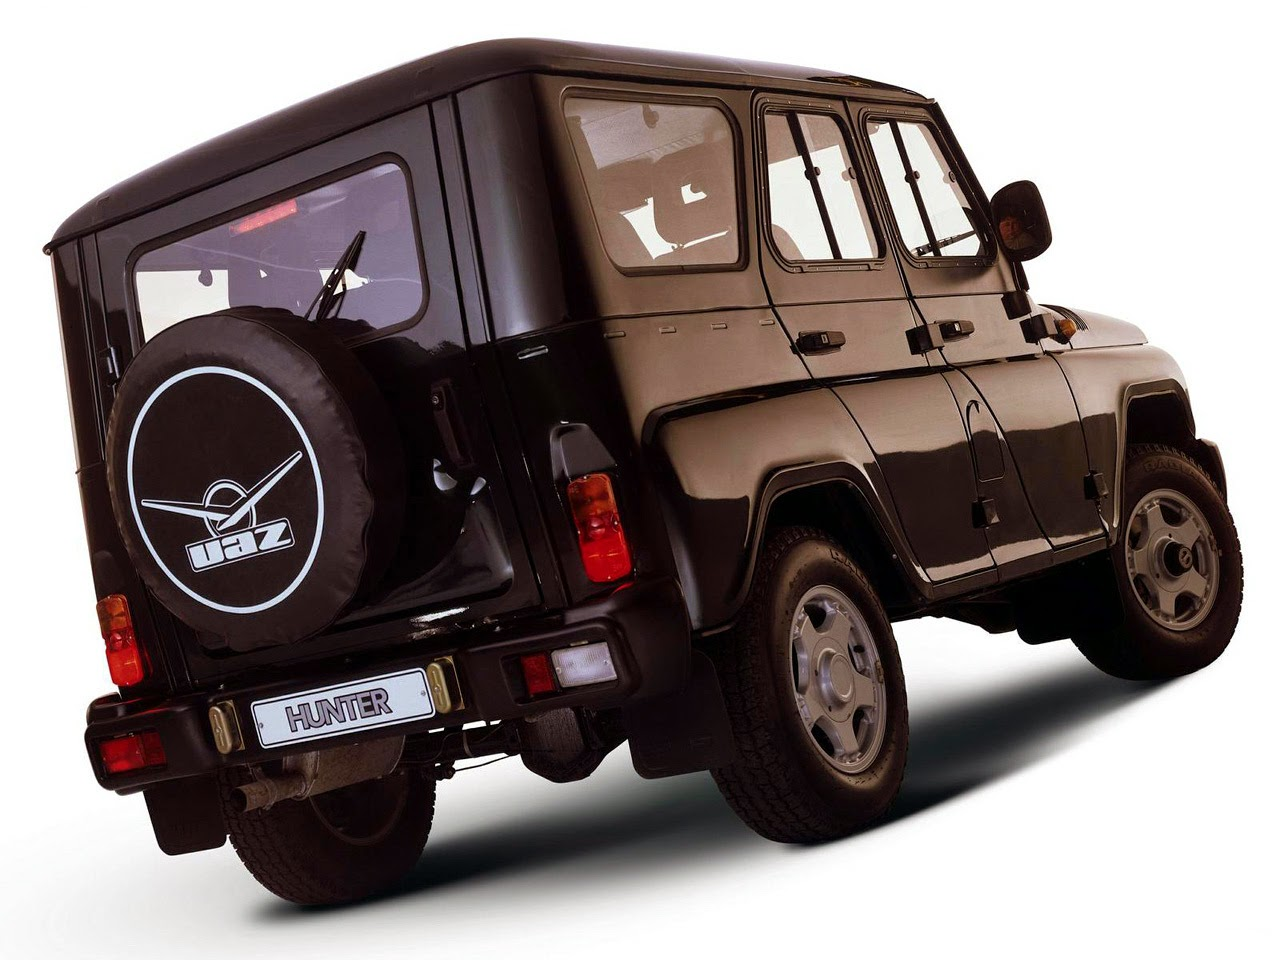 Made In Russia The Almost Indestructible Russian Uaz